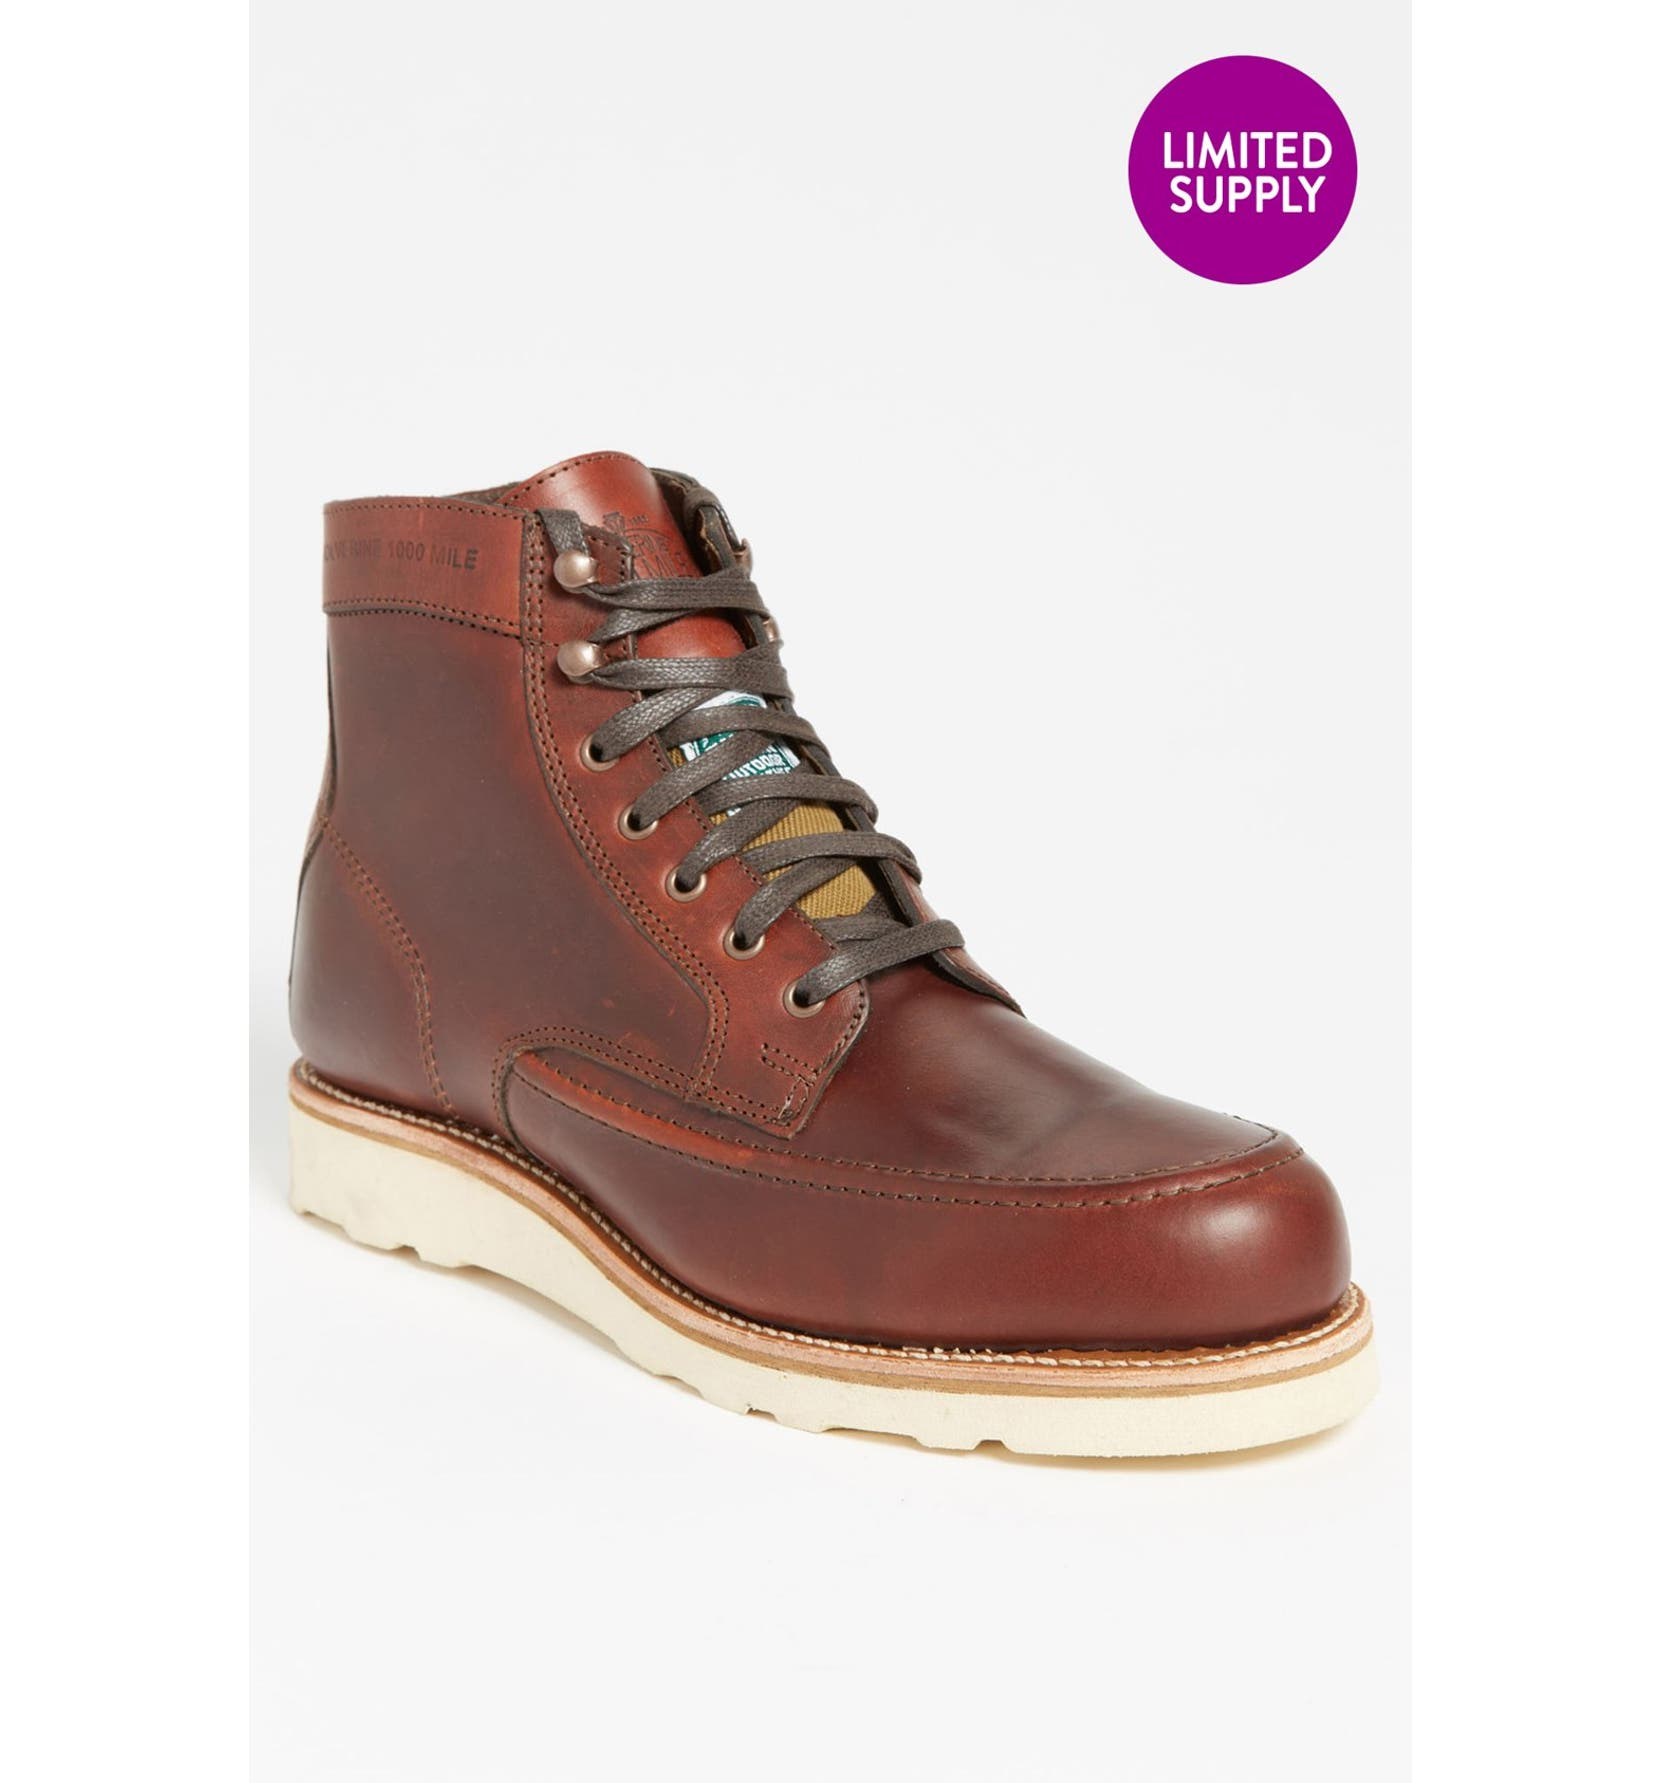 3b8bf2bfd0d '1000 Mile - Emerson' Moc Toe Boot